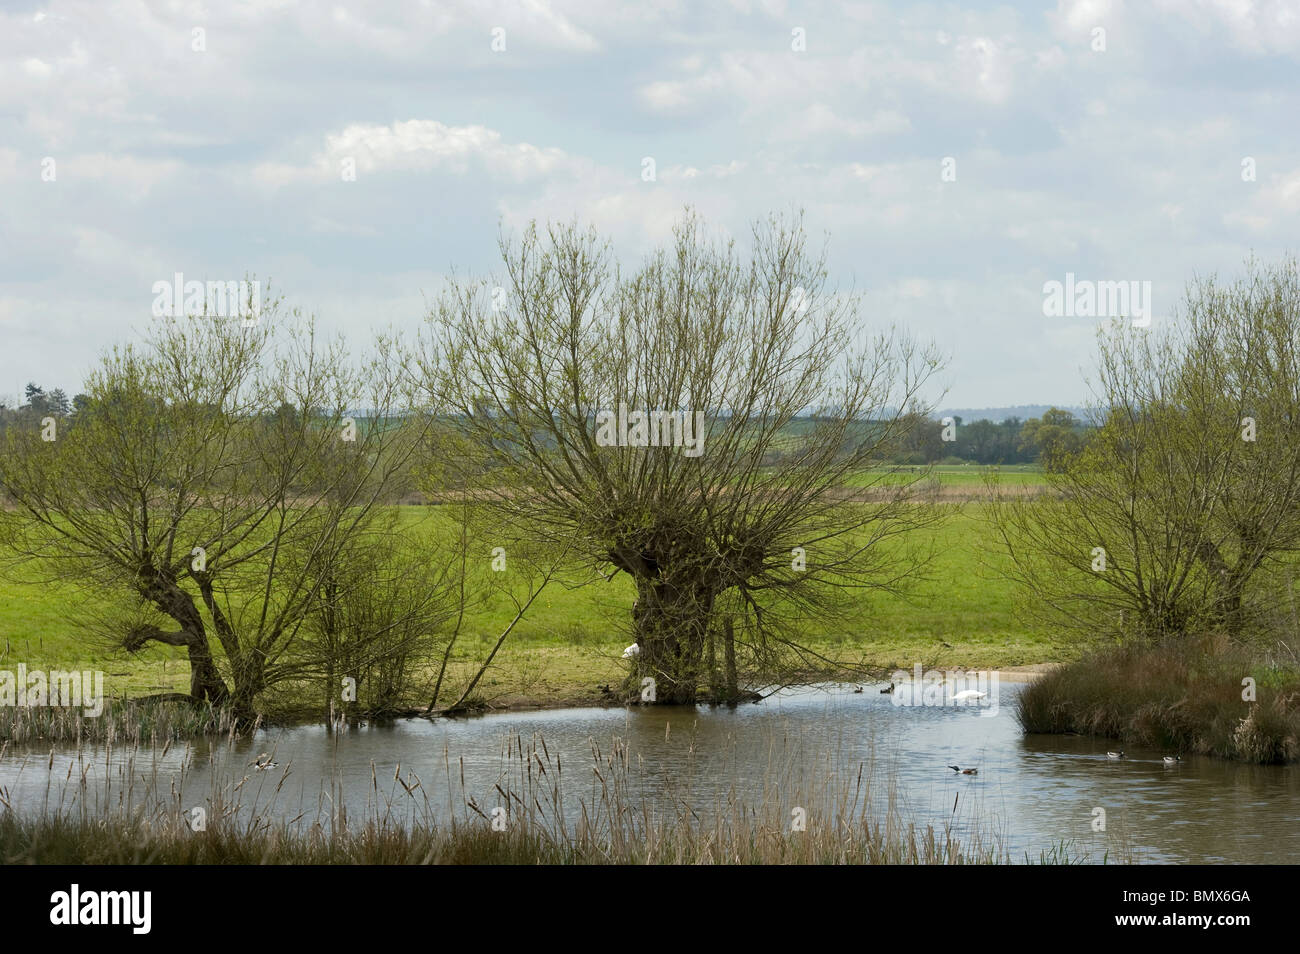 Pollarded crack willows leafing out in early spring at Slimbridge - Stock Image